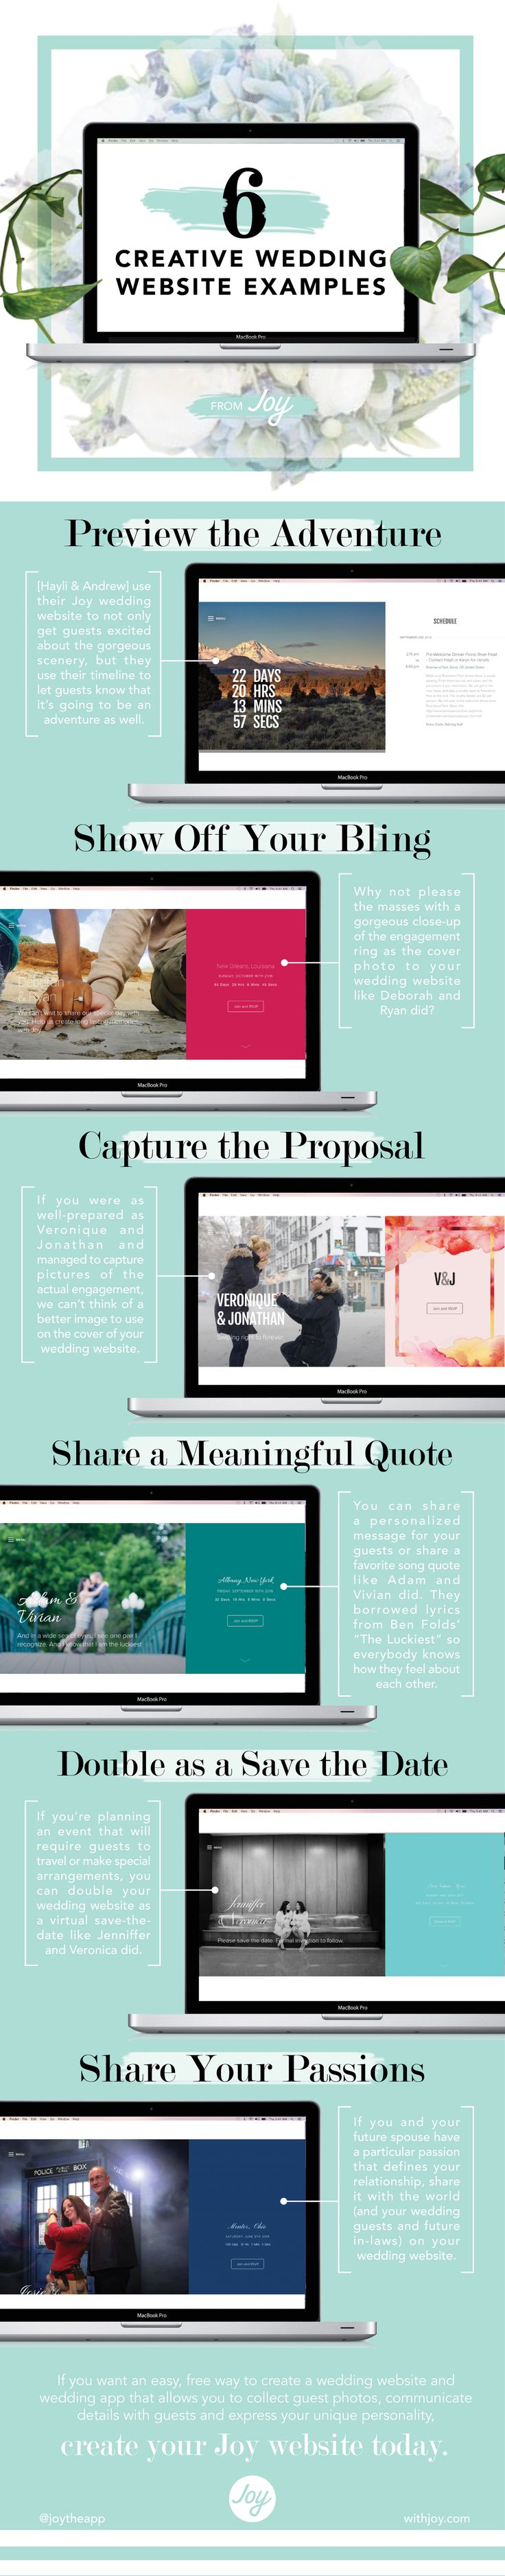 25+ best ideas about Wedding website examples on Pinterest | Your ...